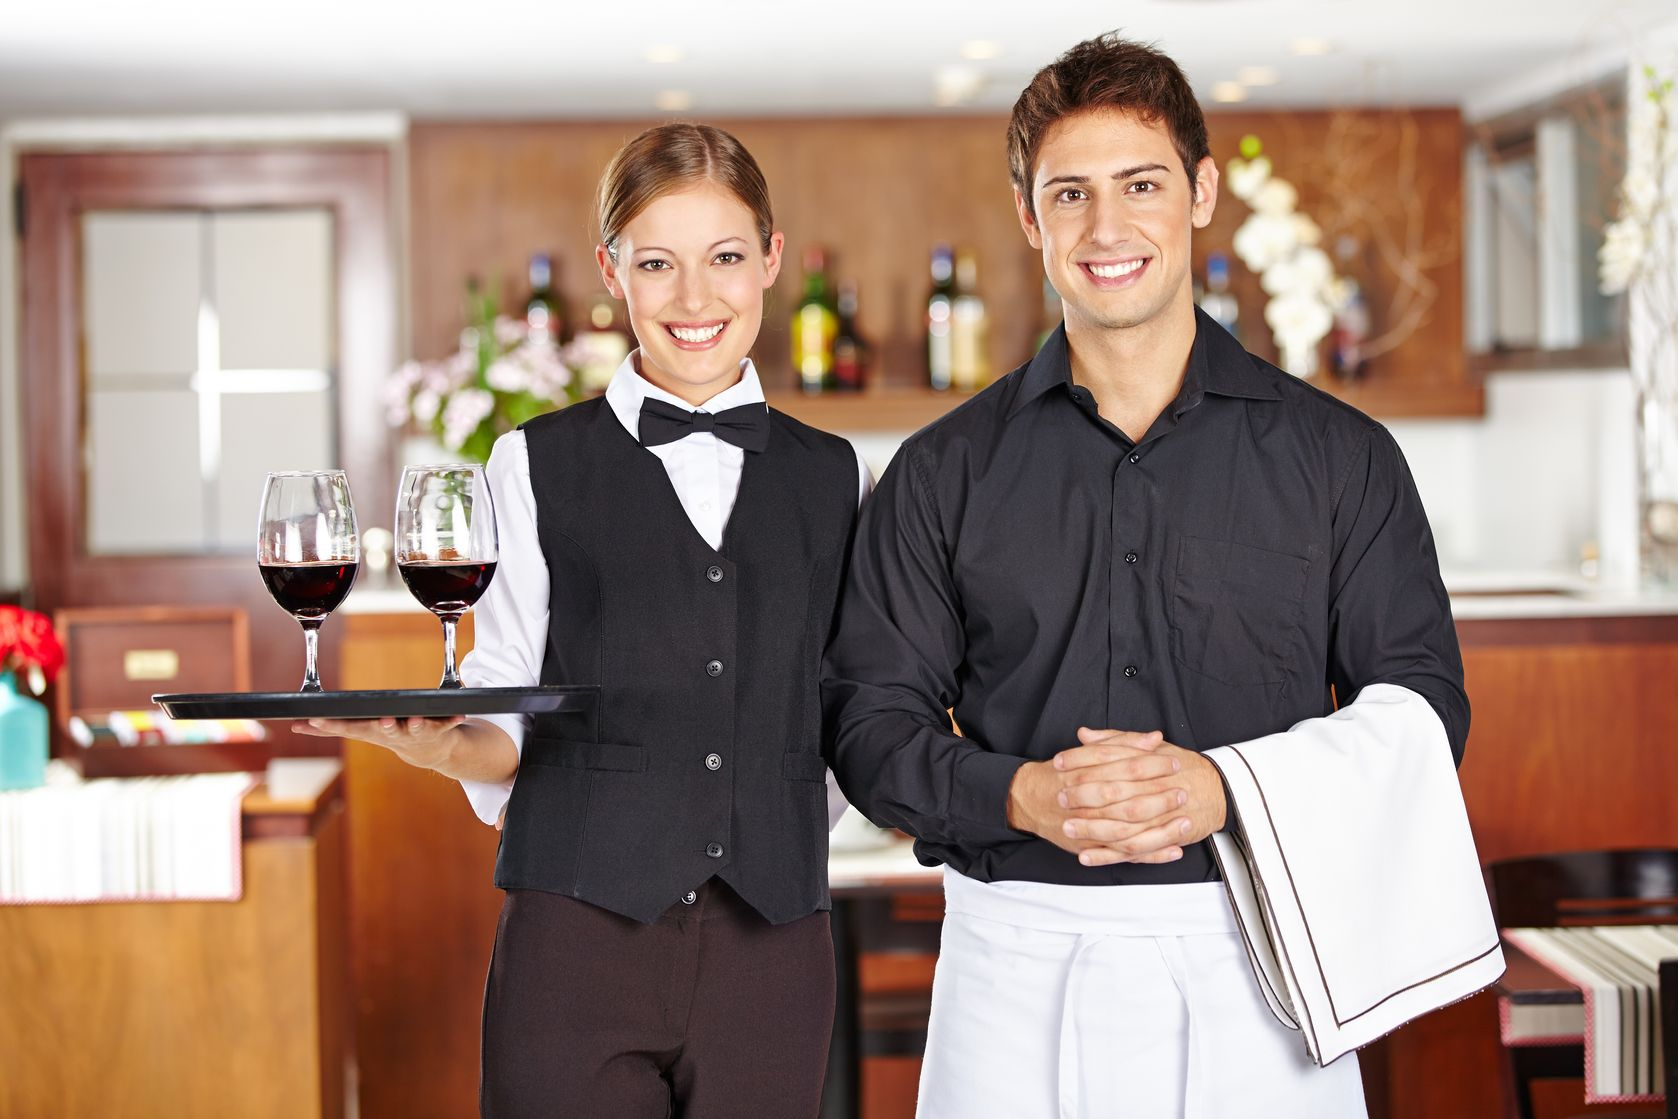 Hospitality and Catering Business for sale in NSW Central West